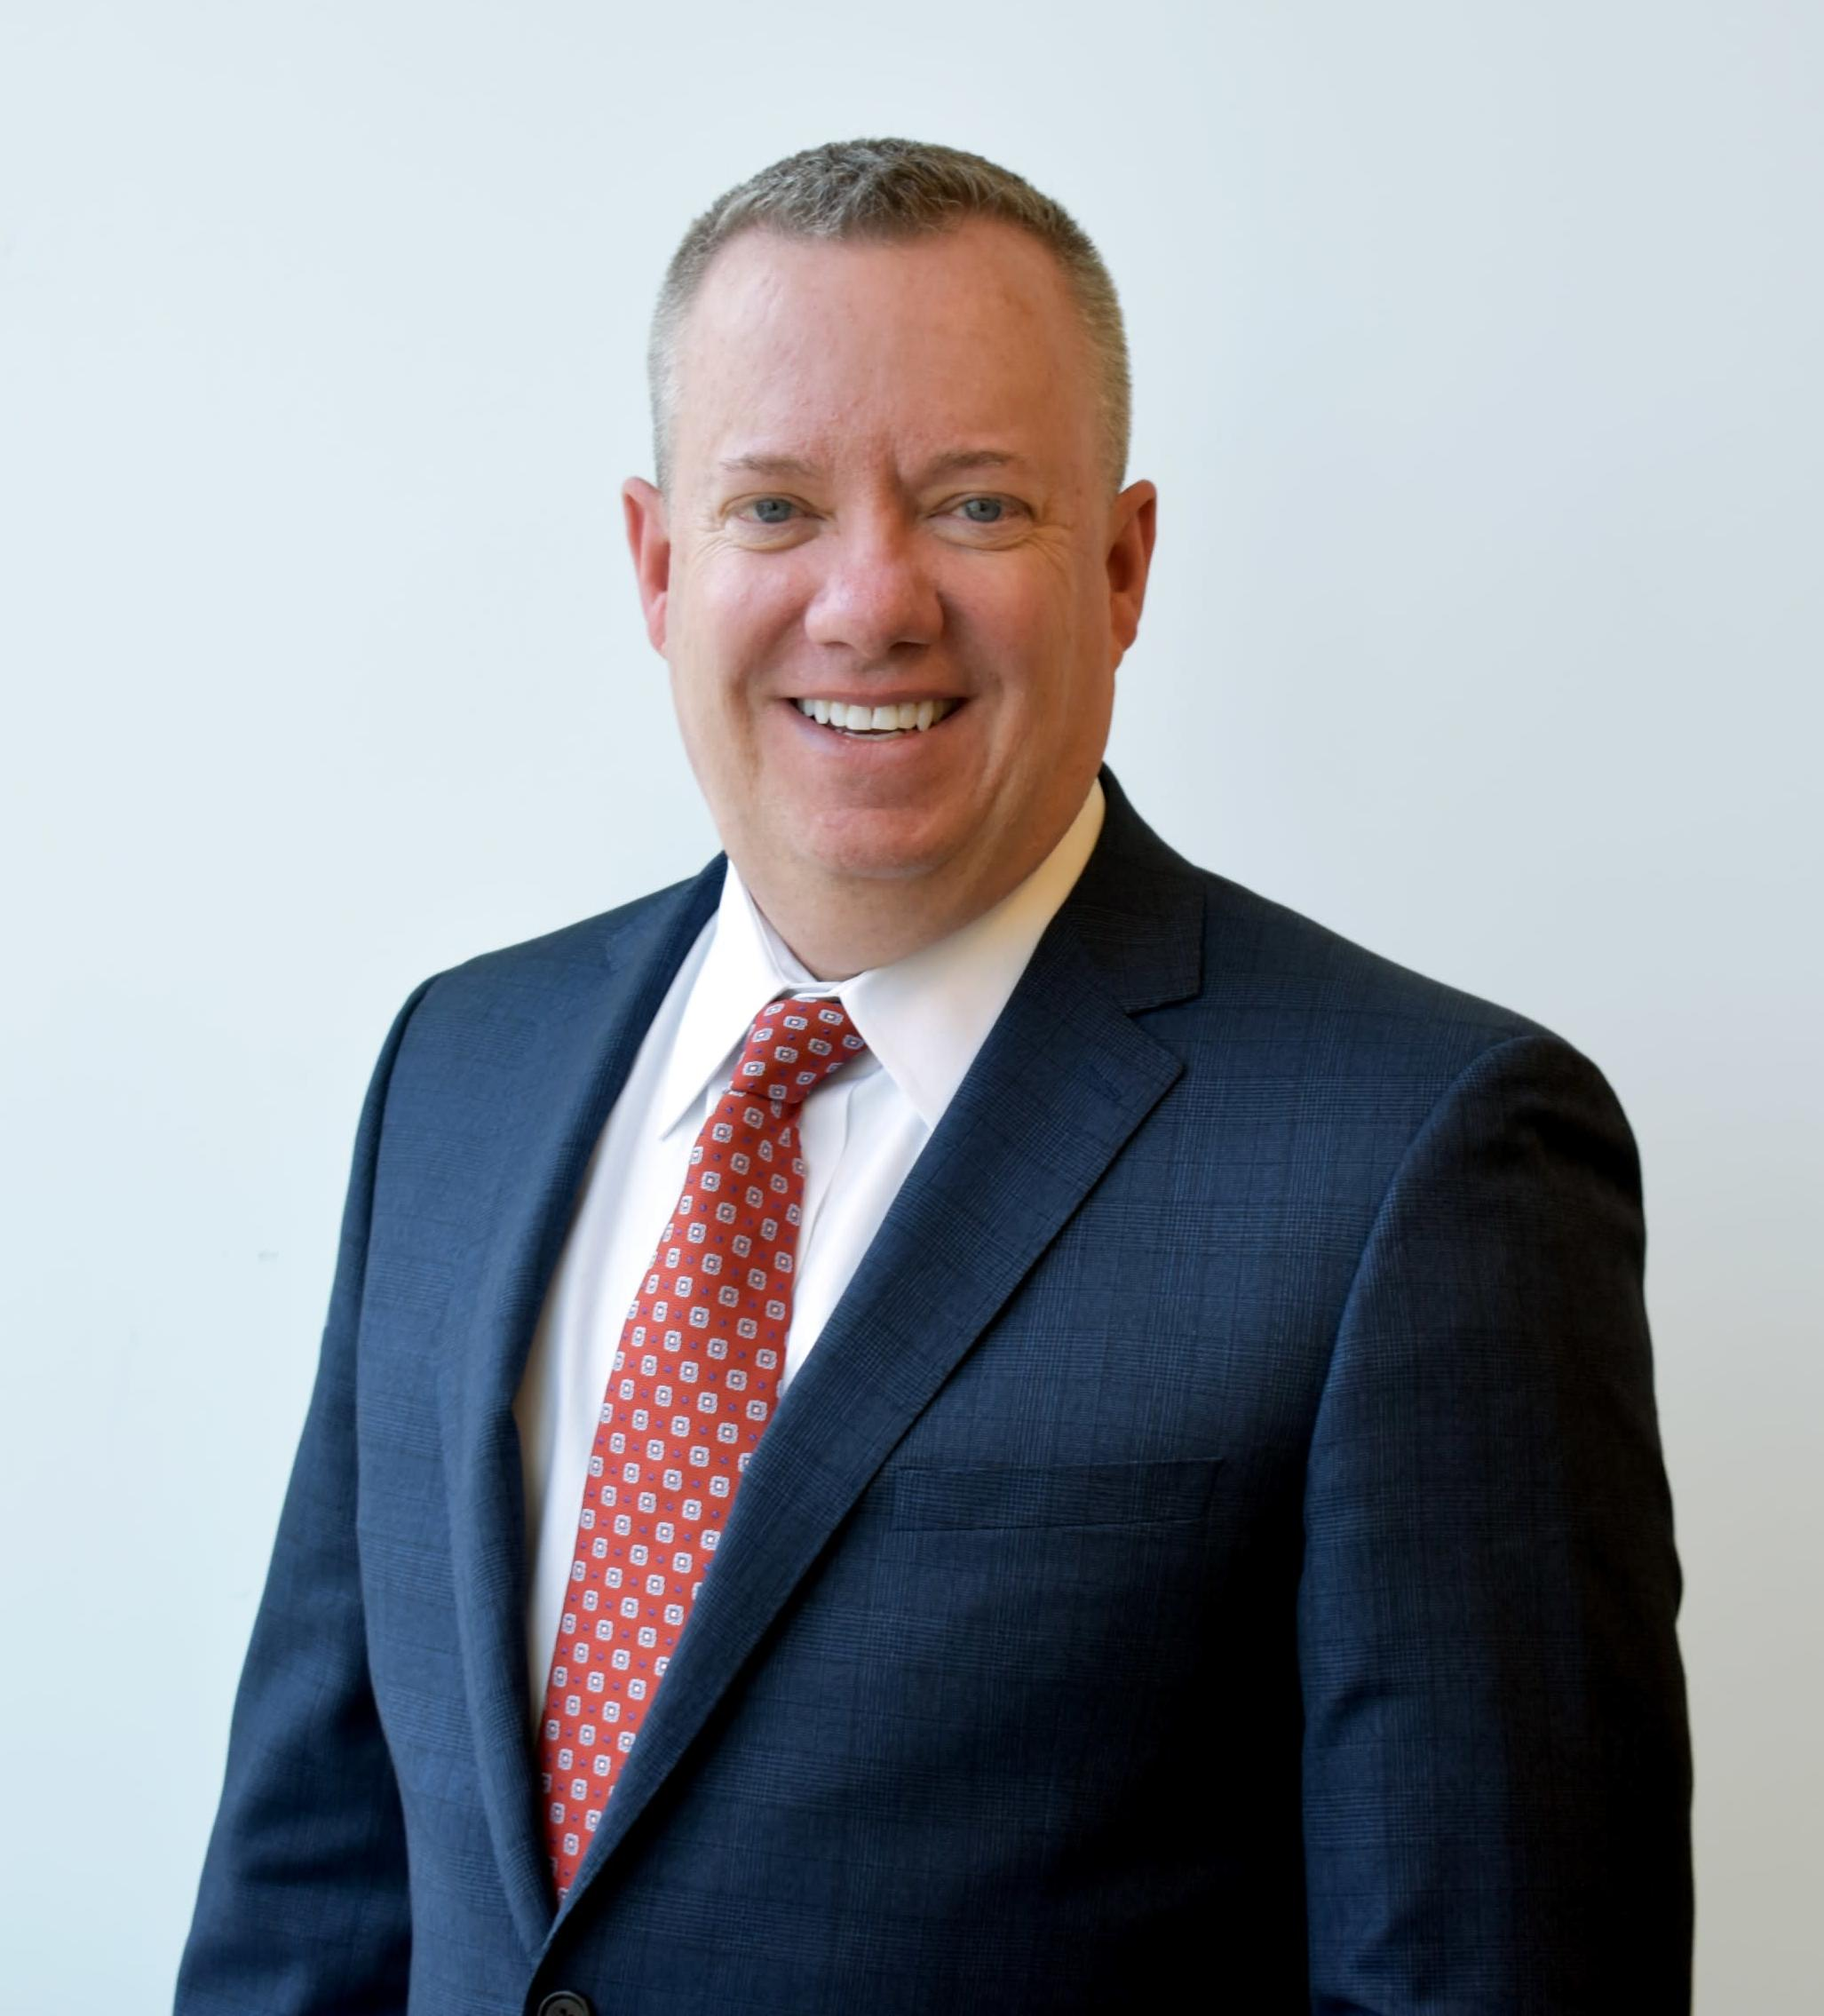 ABIR Welcomes New President and Chief Executive John Huff; Brad Kading Retires After 12 Years of Distinguished Service